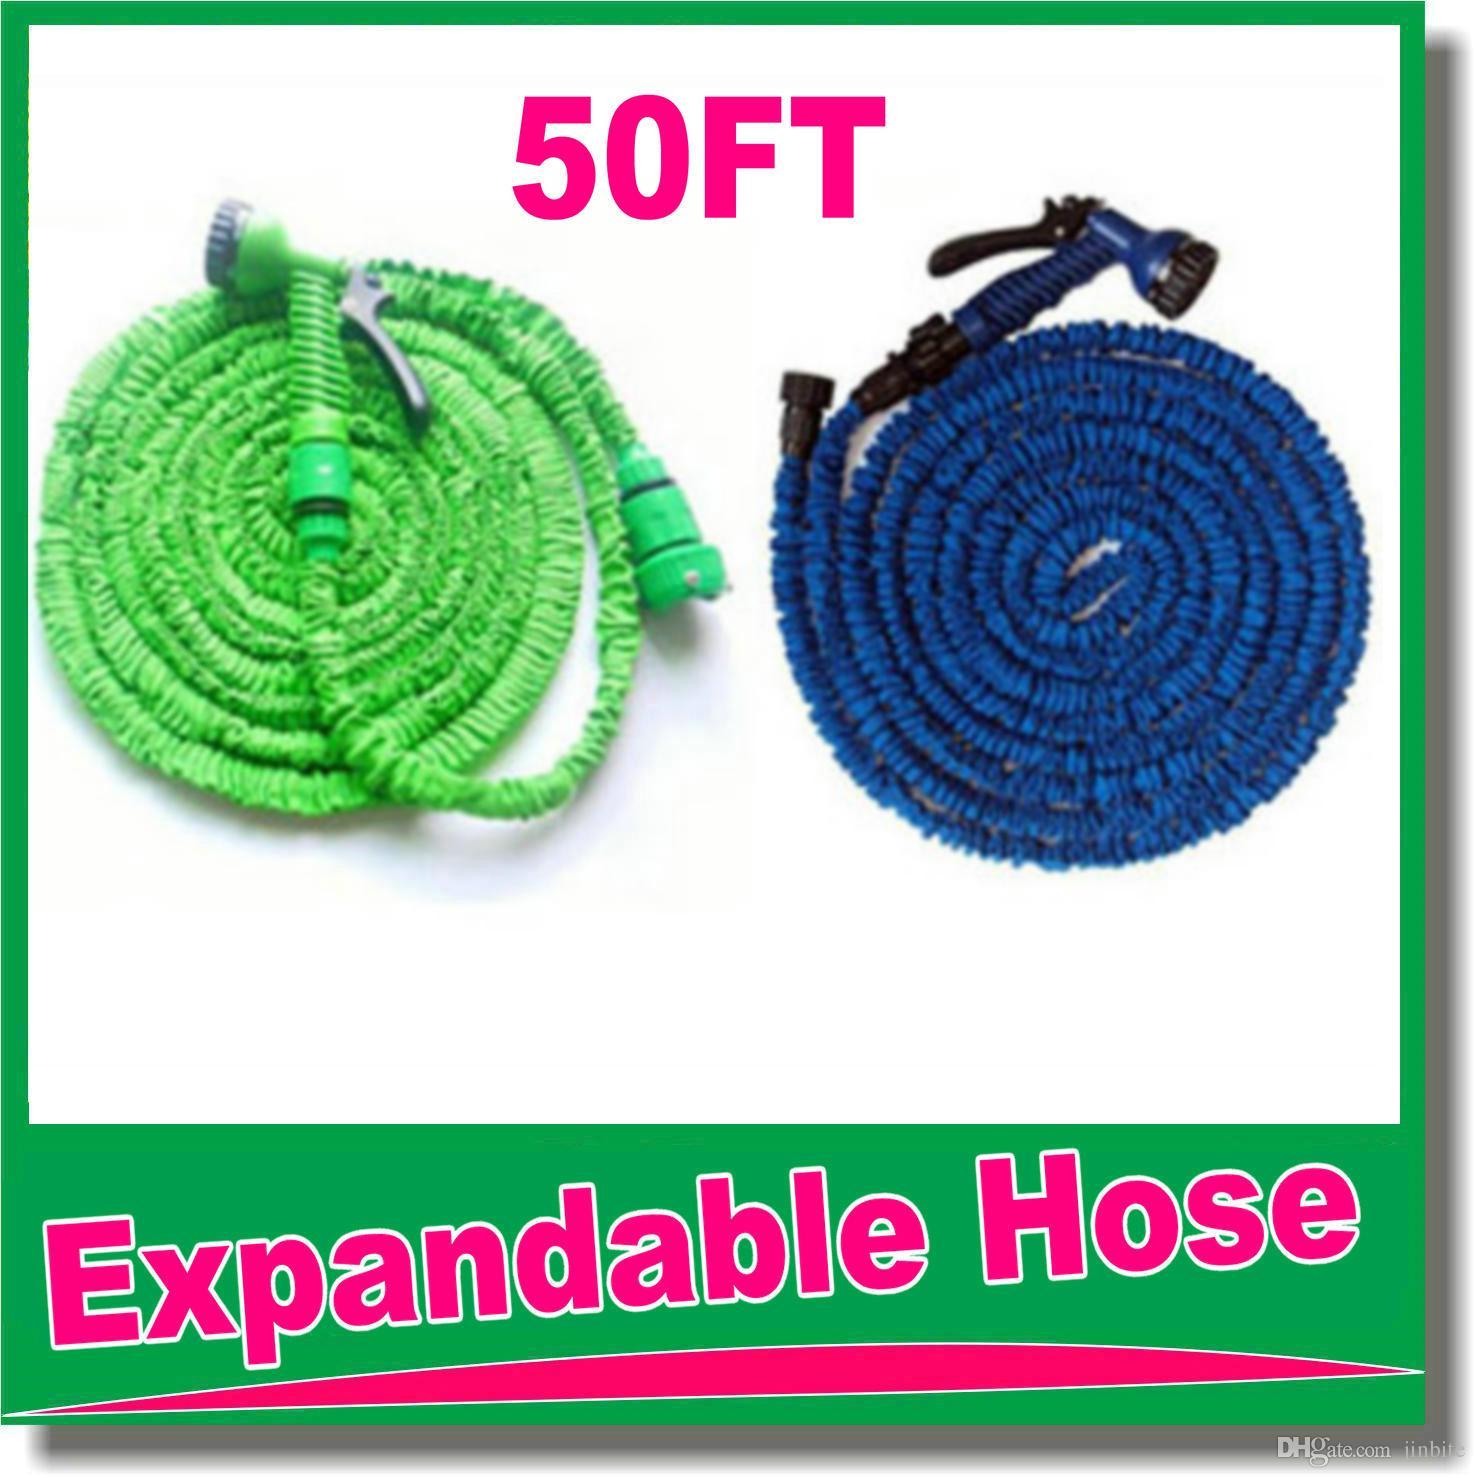 high quality 50FT retractable hose/Expandable Garden hose Blue Green color fast connector water hose with water gun OM-D9